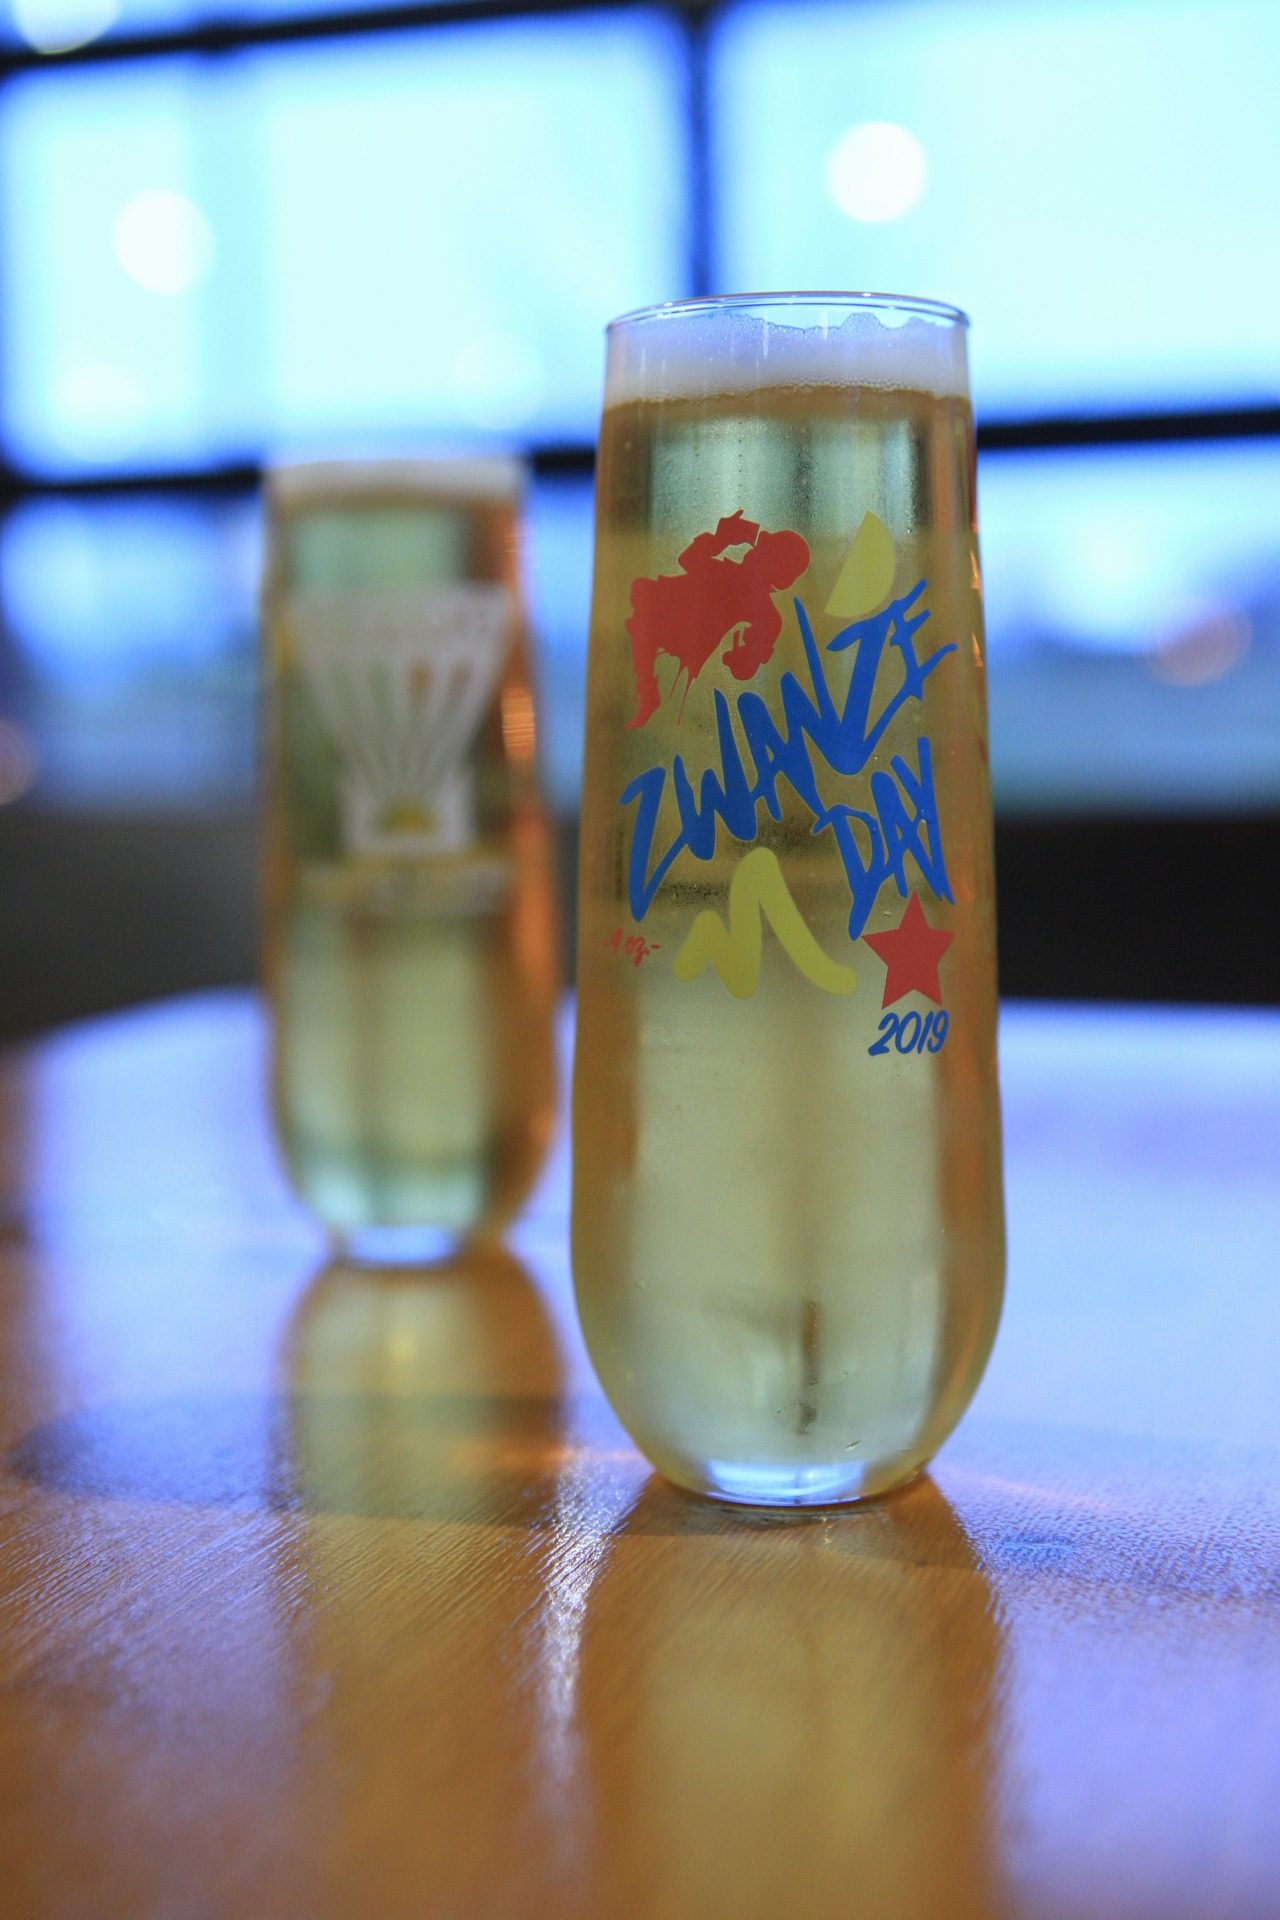 Limited edition Zwanze Day glass